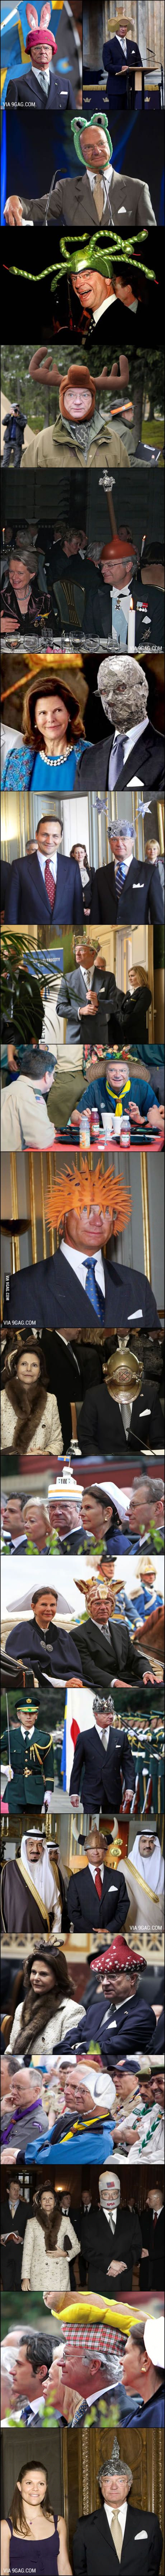 We can all agree that King Gustaf of Sweden is hilarious.